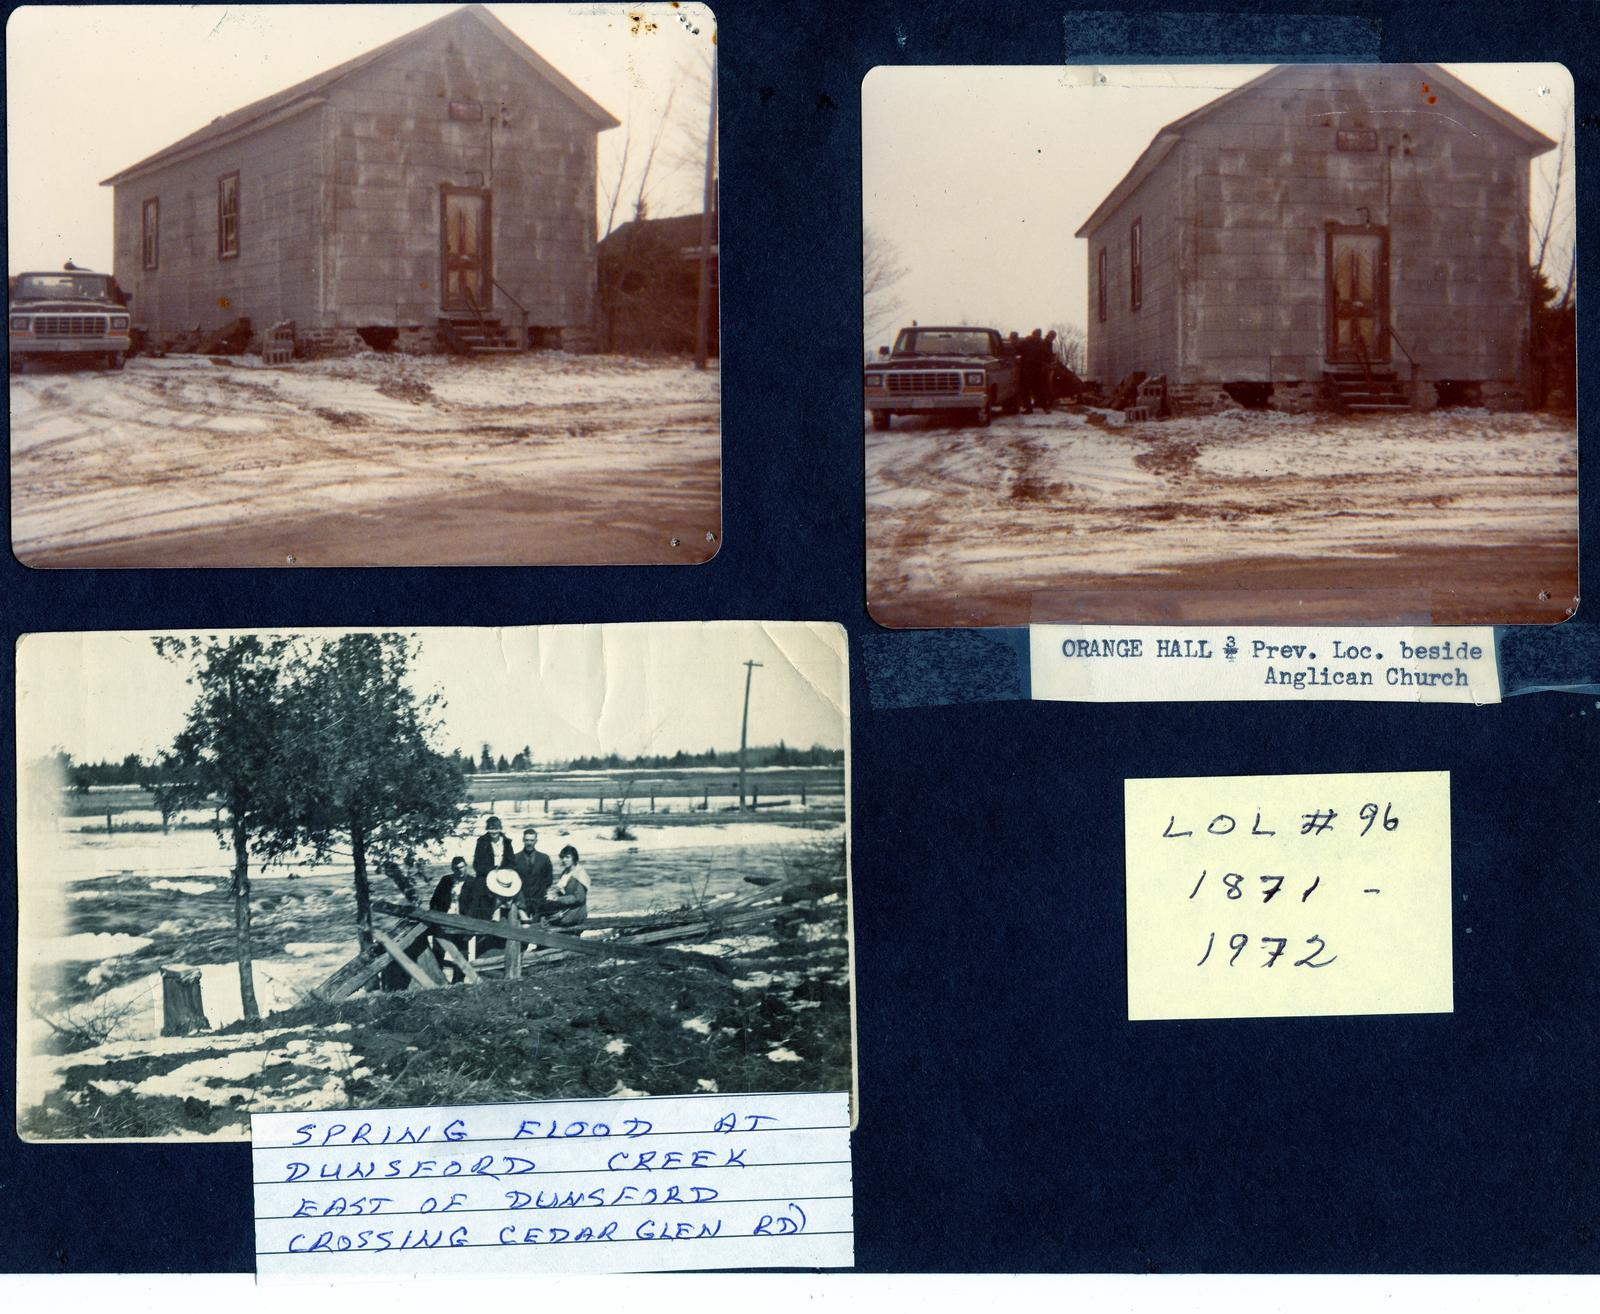 page 37 - Orange Hall and Spring Flood